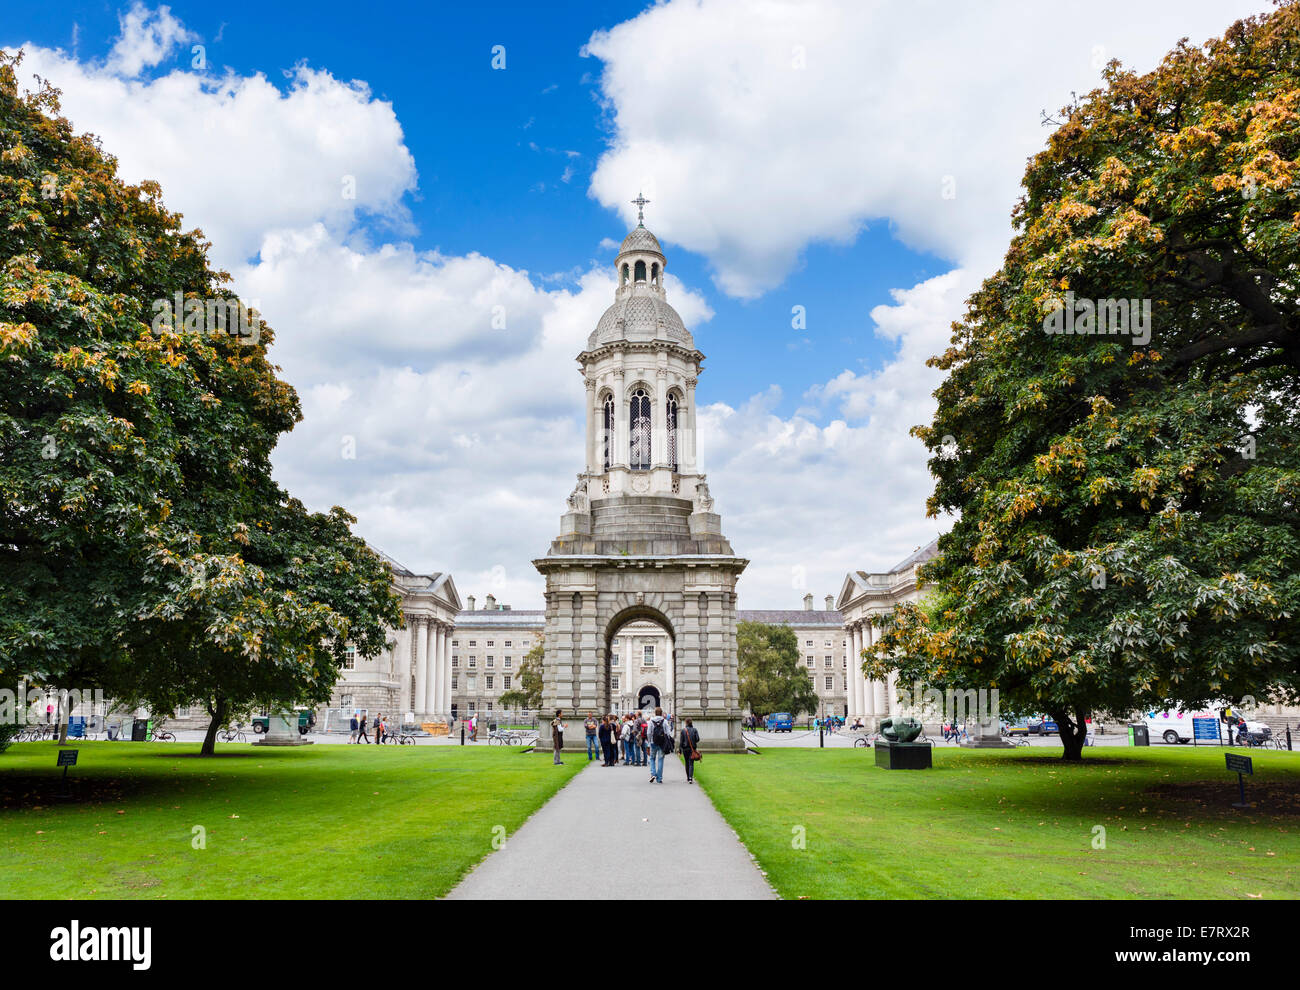 Library Square and the Campanile, Trinity College, Dublin, Republic of Ireland - Stock Image